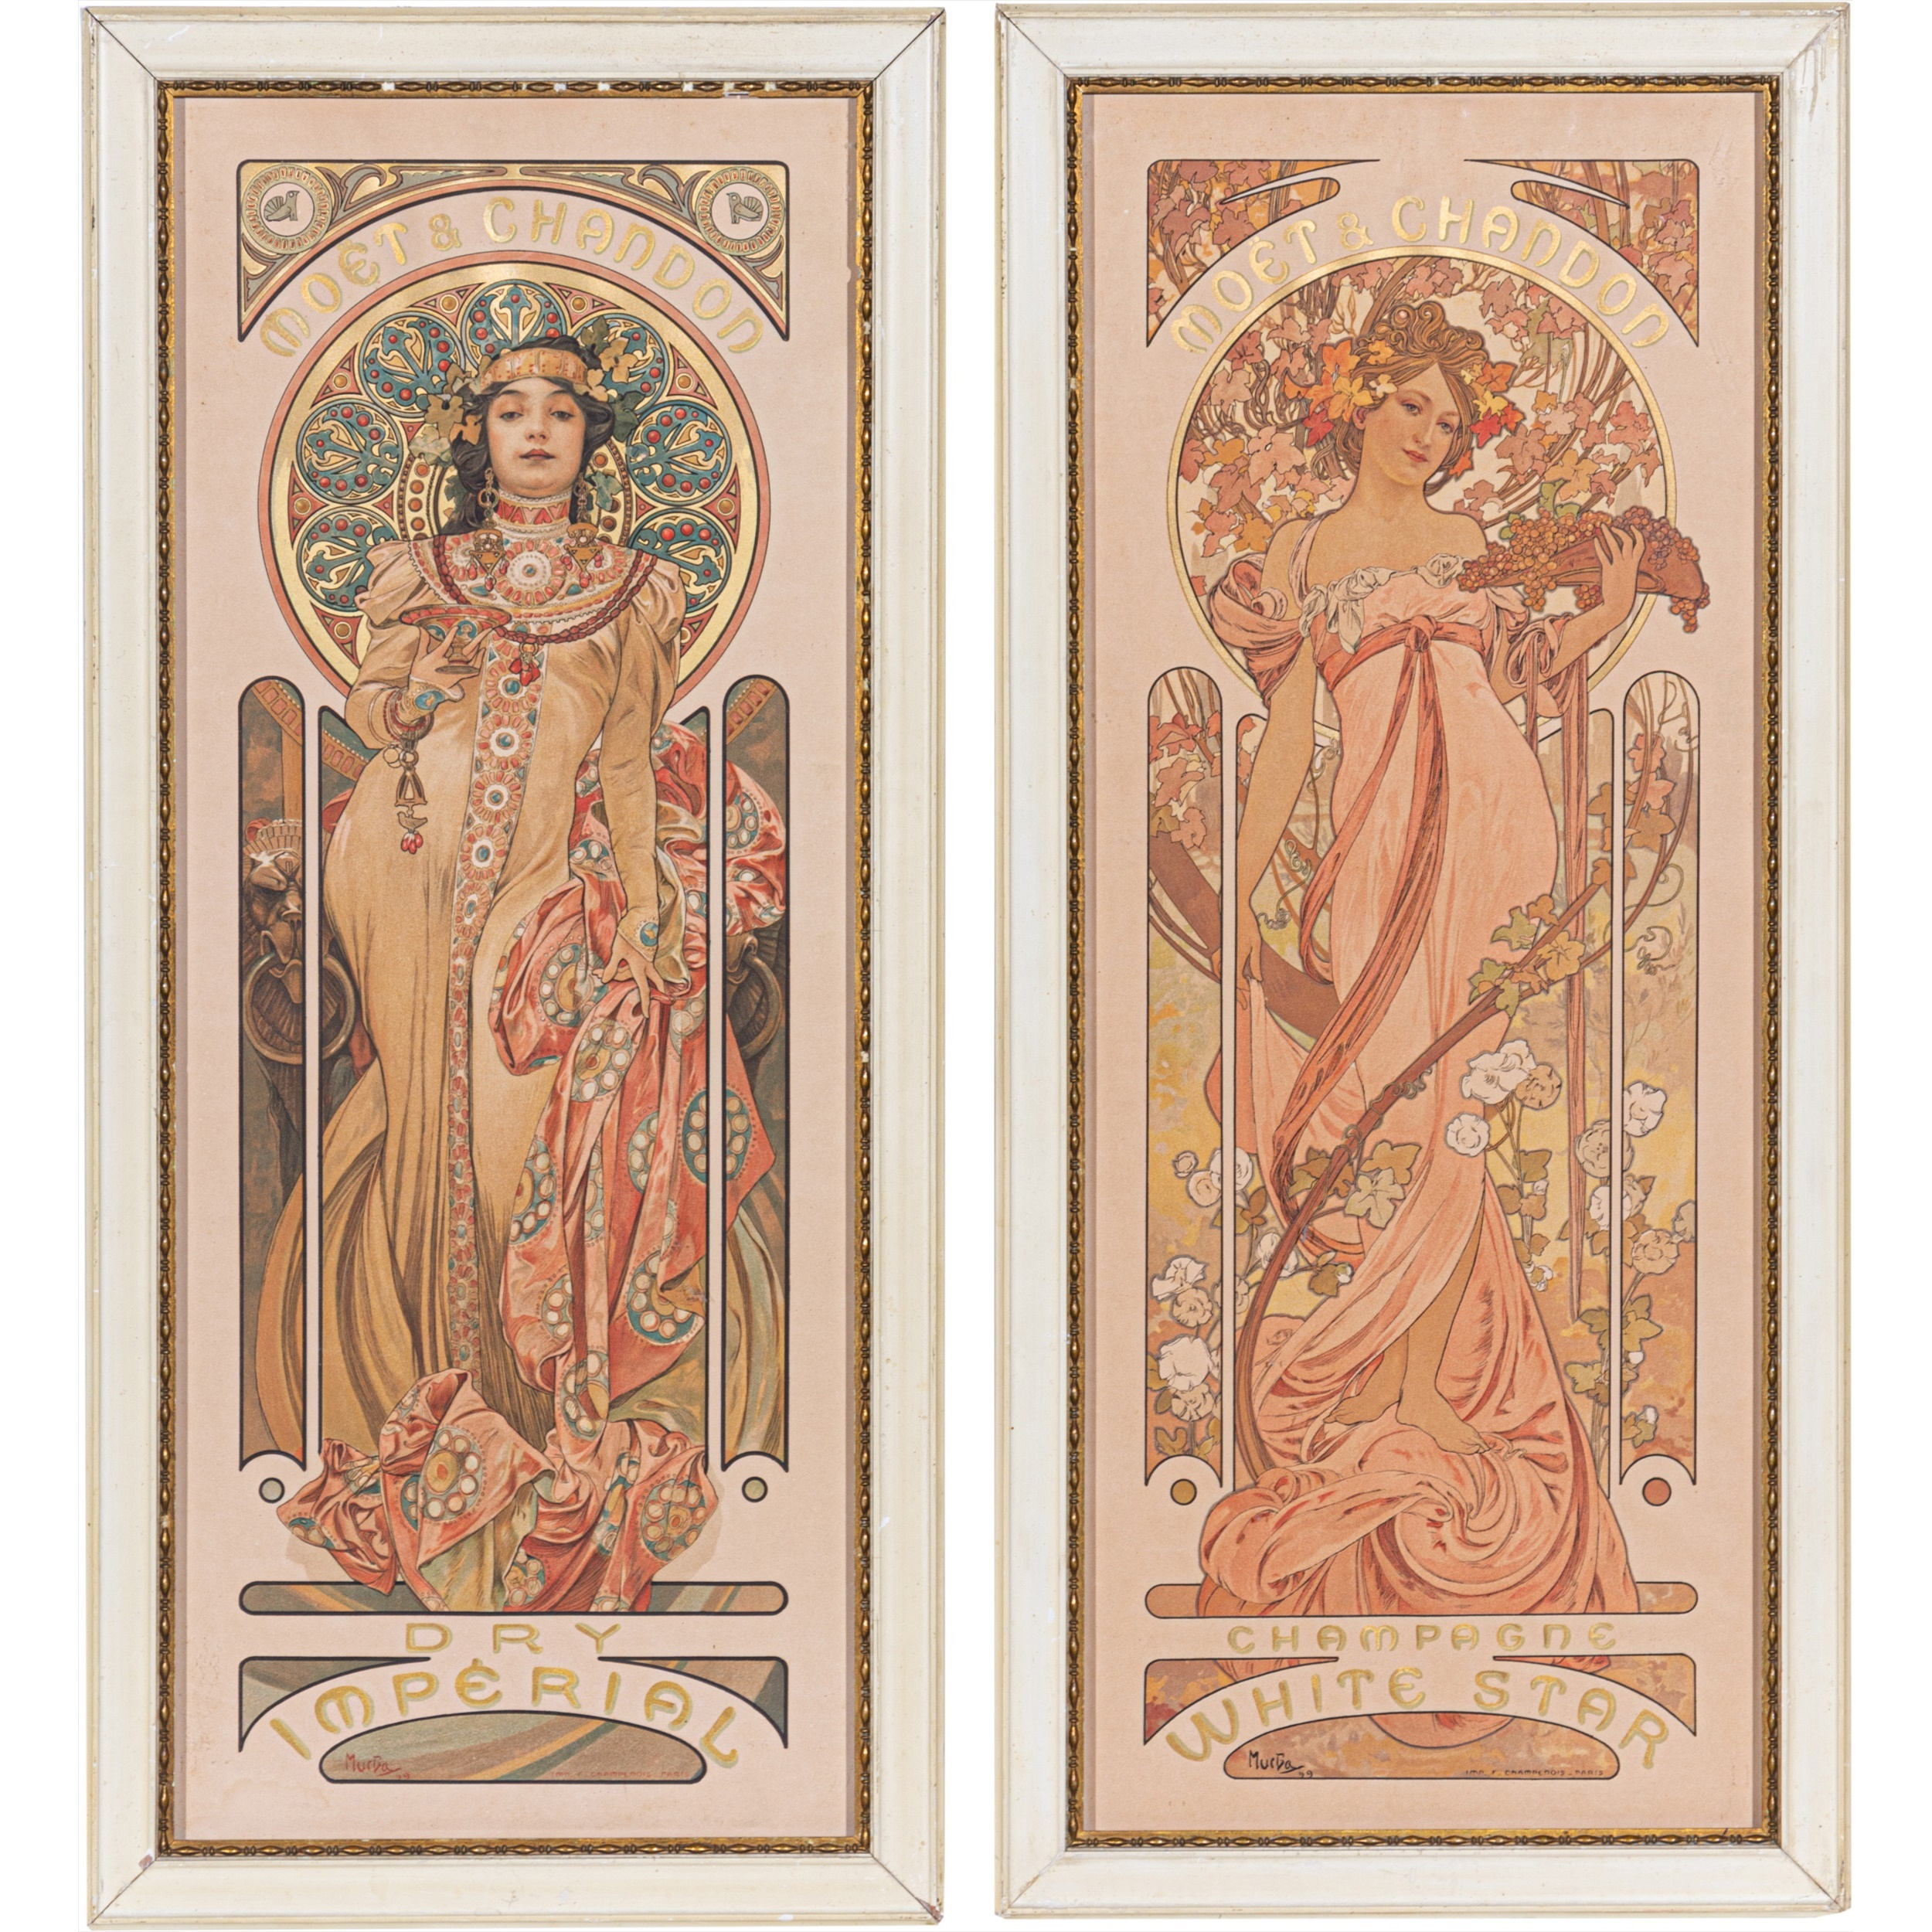 Alphonse Mucha for Moët & Chandon - White Star, and Dry Impérial lithographic posters